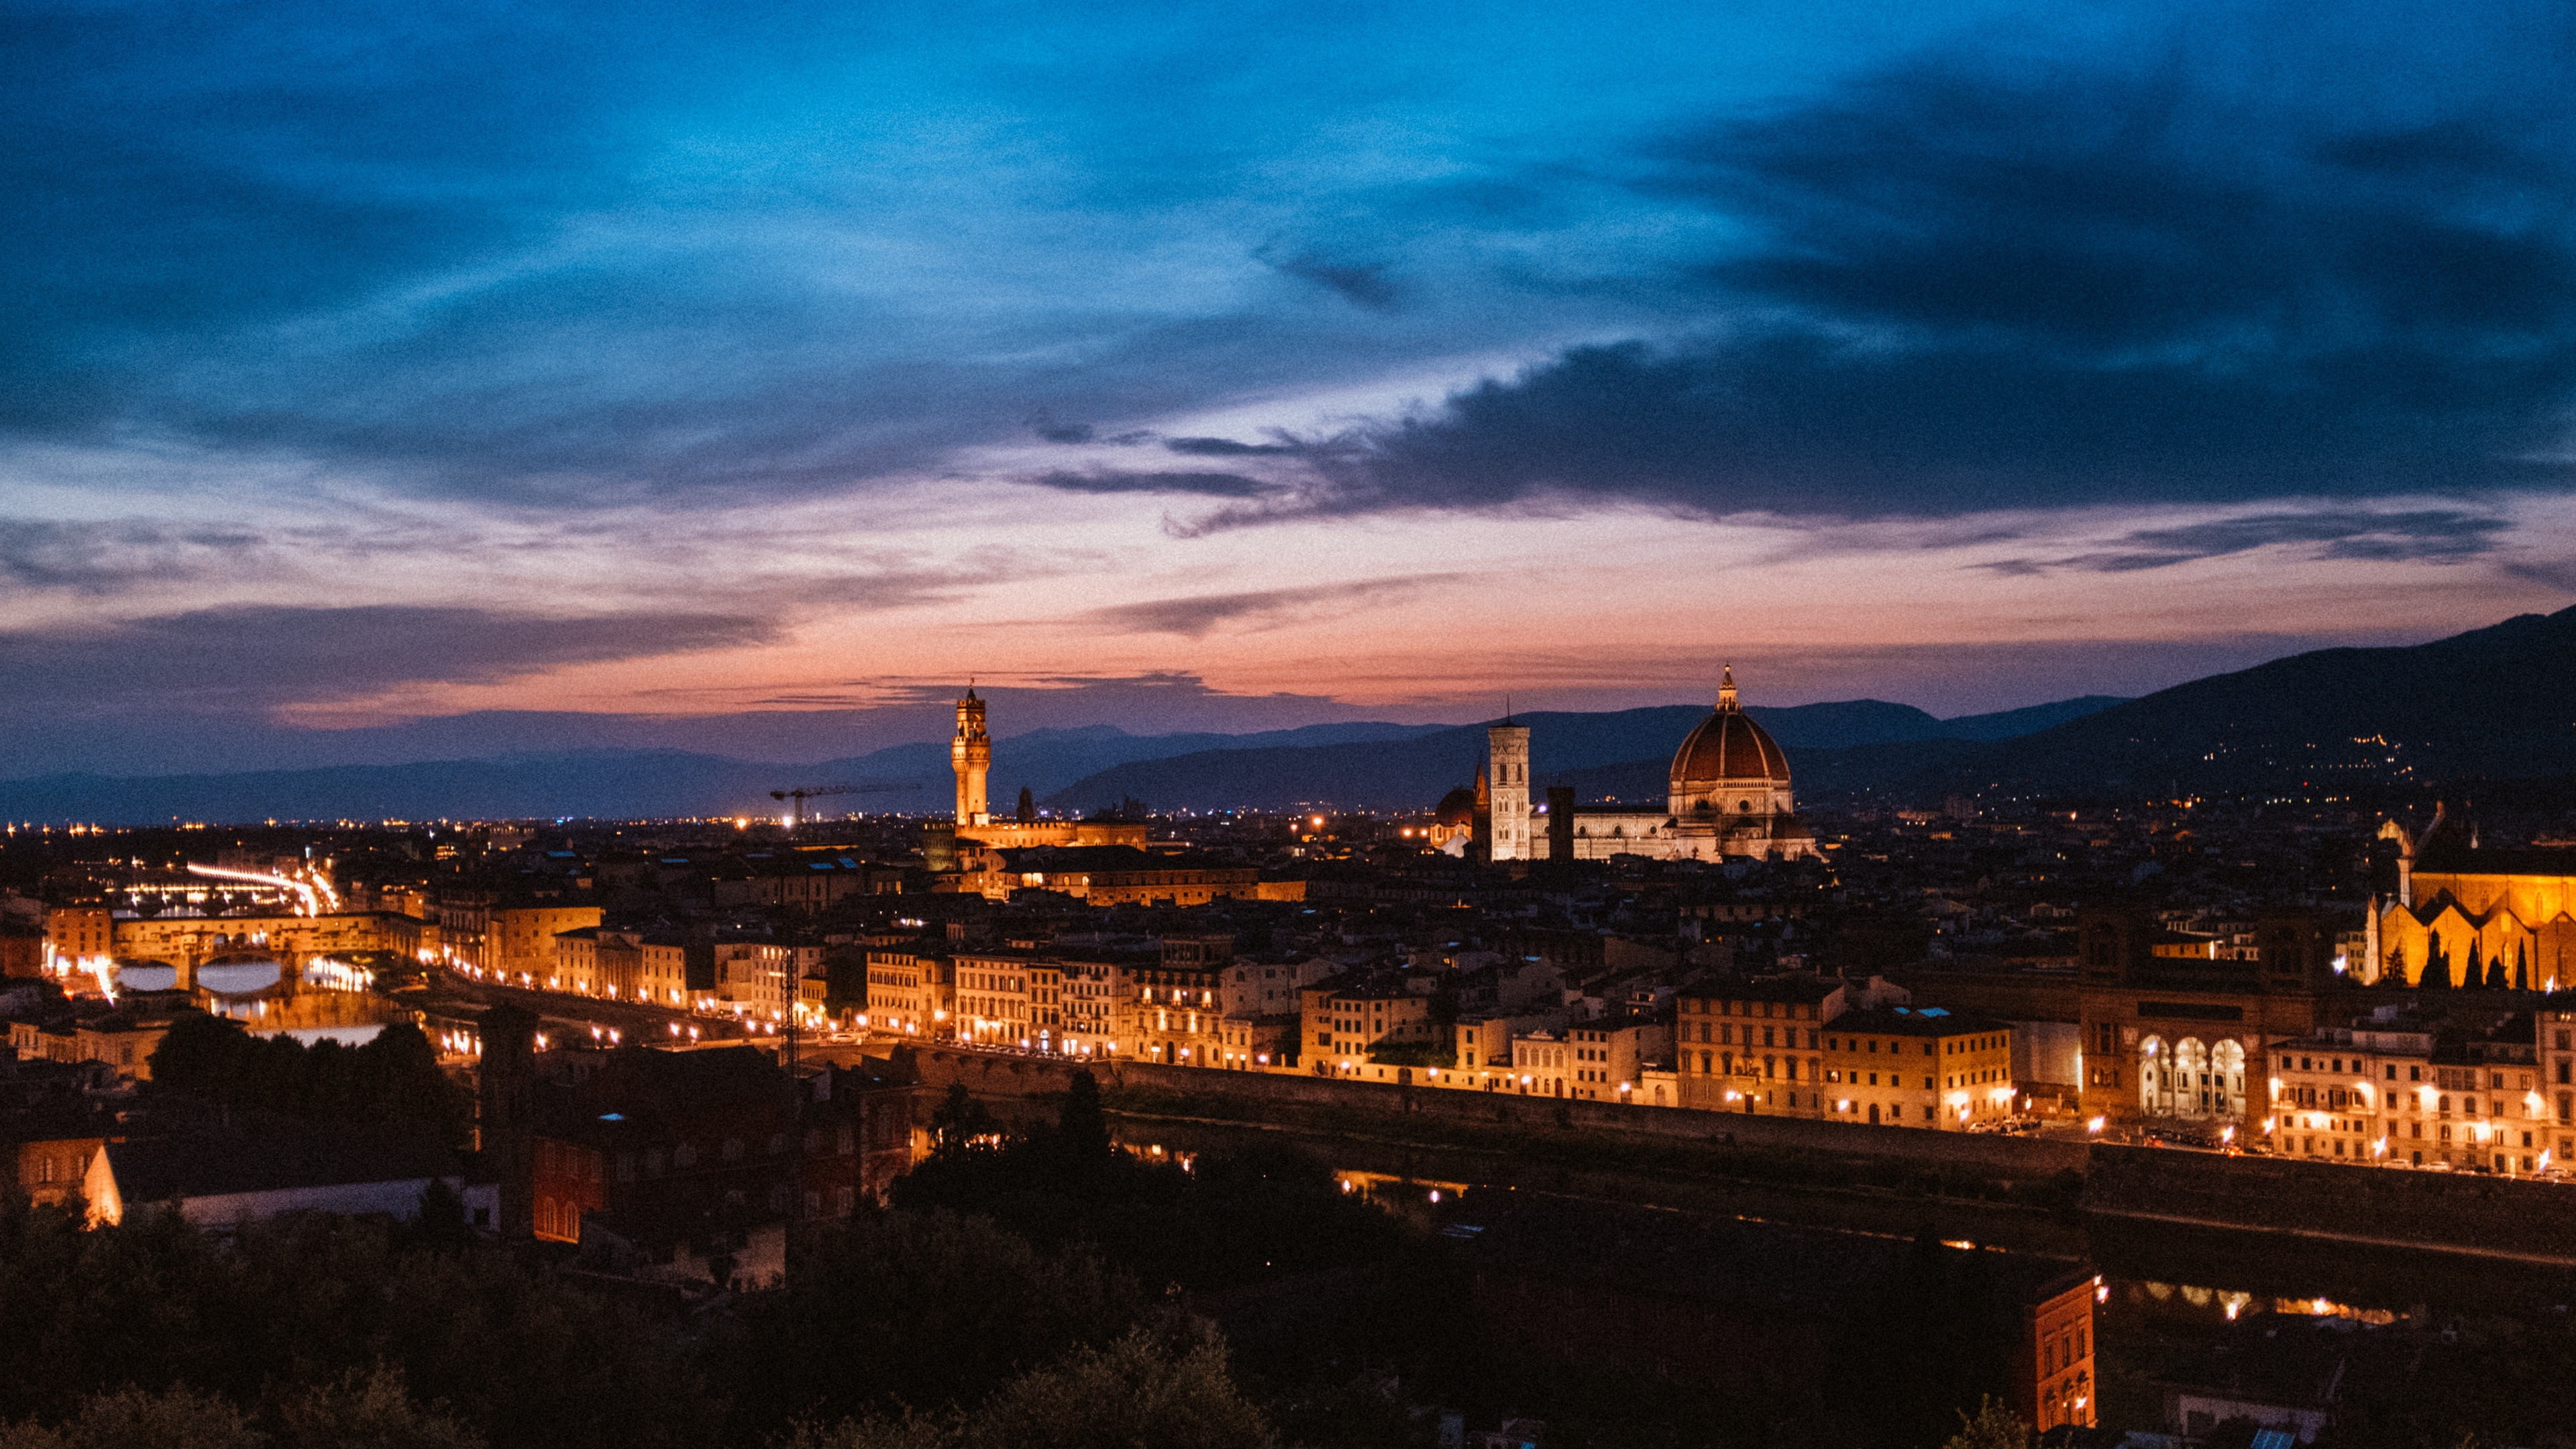 florence italy night city top view 4k 1538068725 - florence, italy, night city, top view 4k - night city, Italy, florence